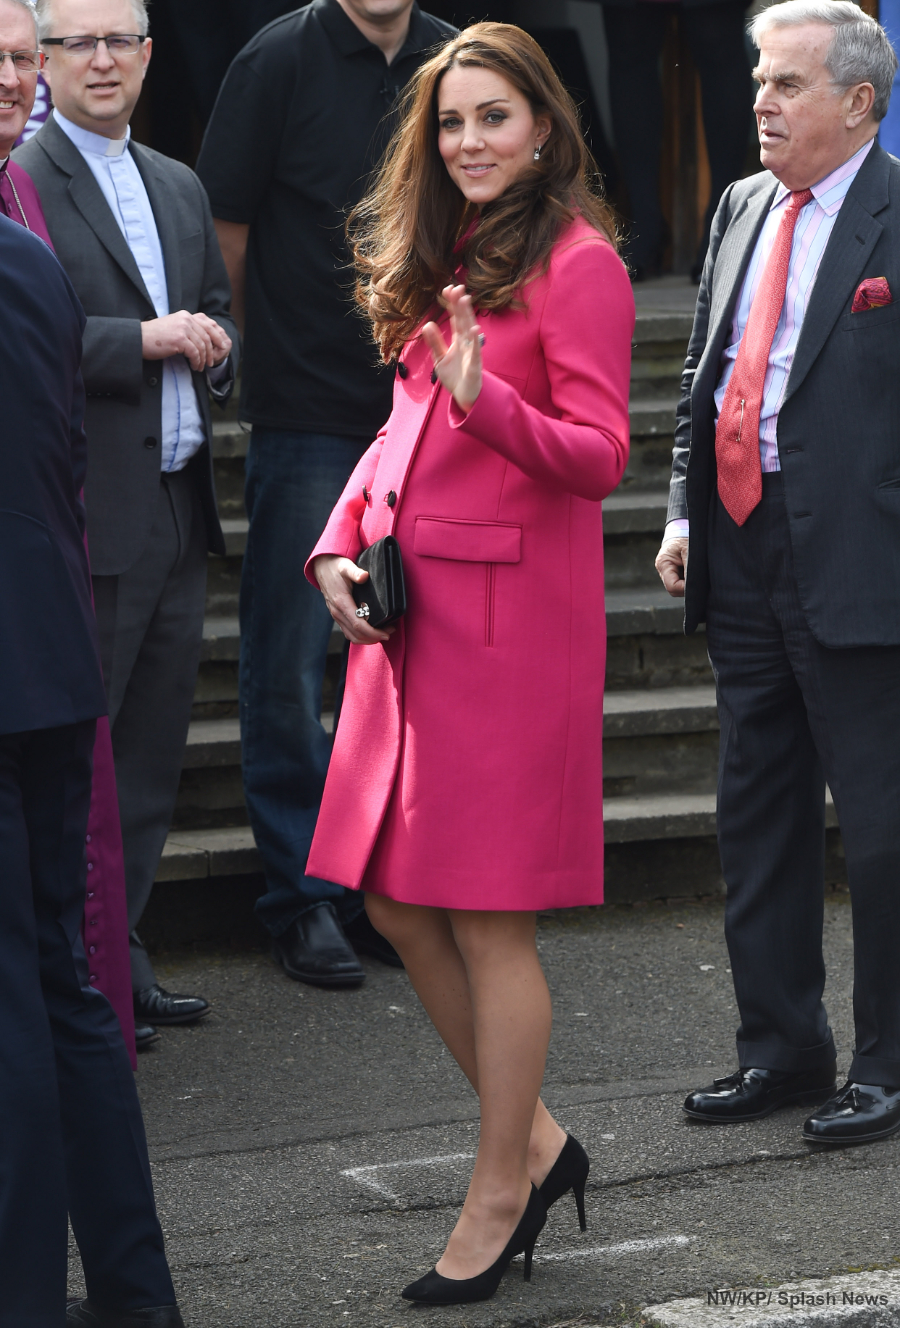 Kate Middleton Pregnant with Princess Charlotte in 2015